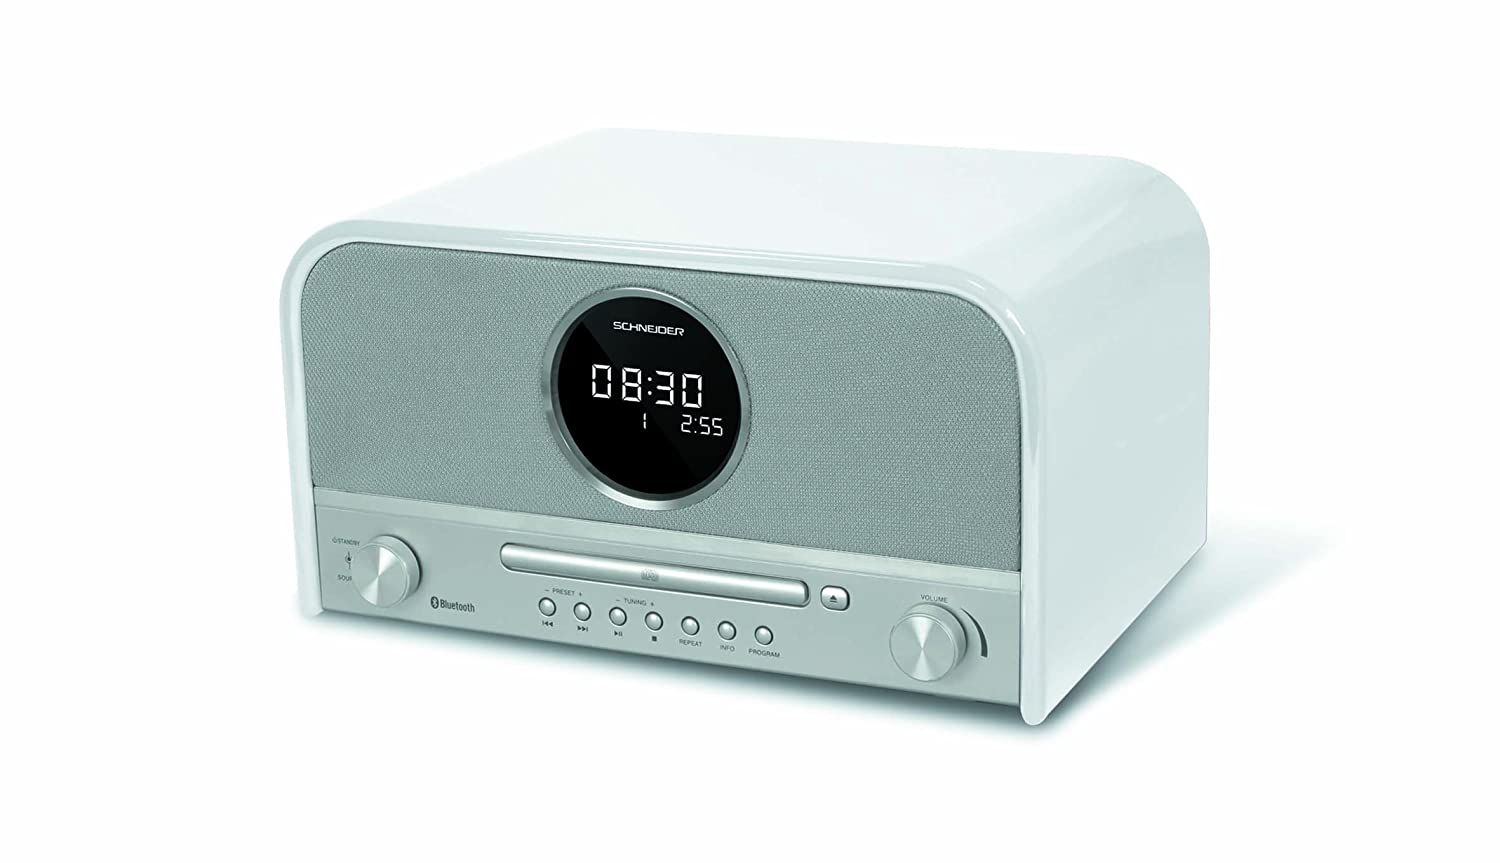 Schneider SC700MCCD Feelings - Micro Cadena diseñ o Vintage (CD, MP3, Bluetooth) Color Blanco 3527570047572